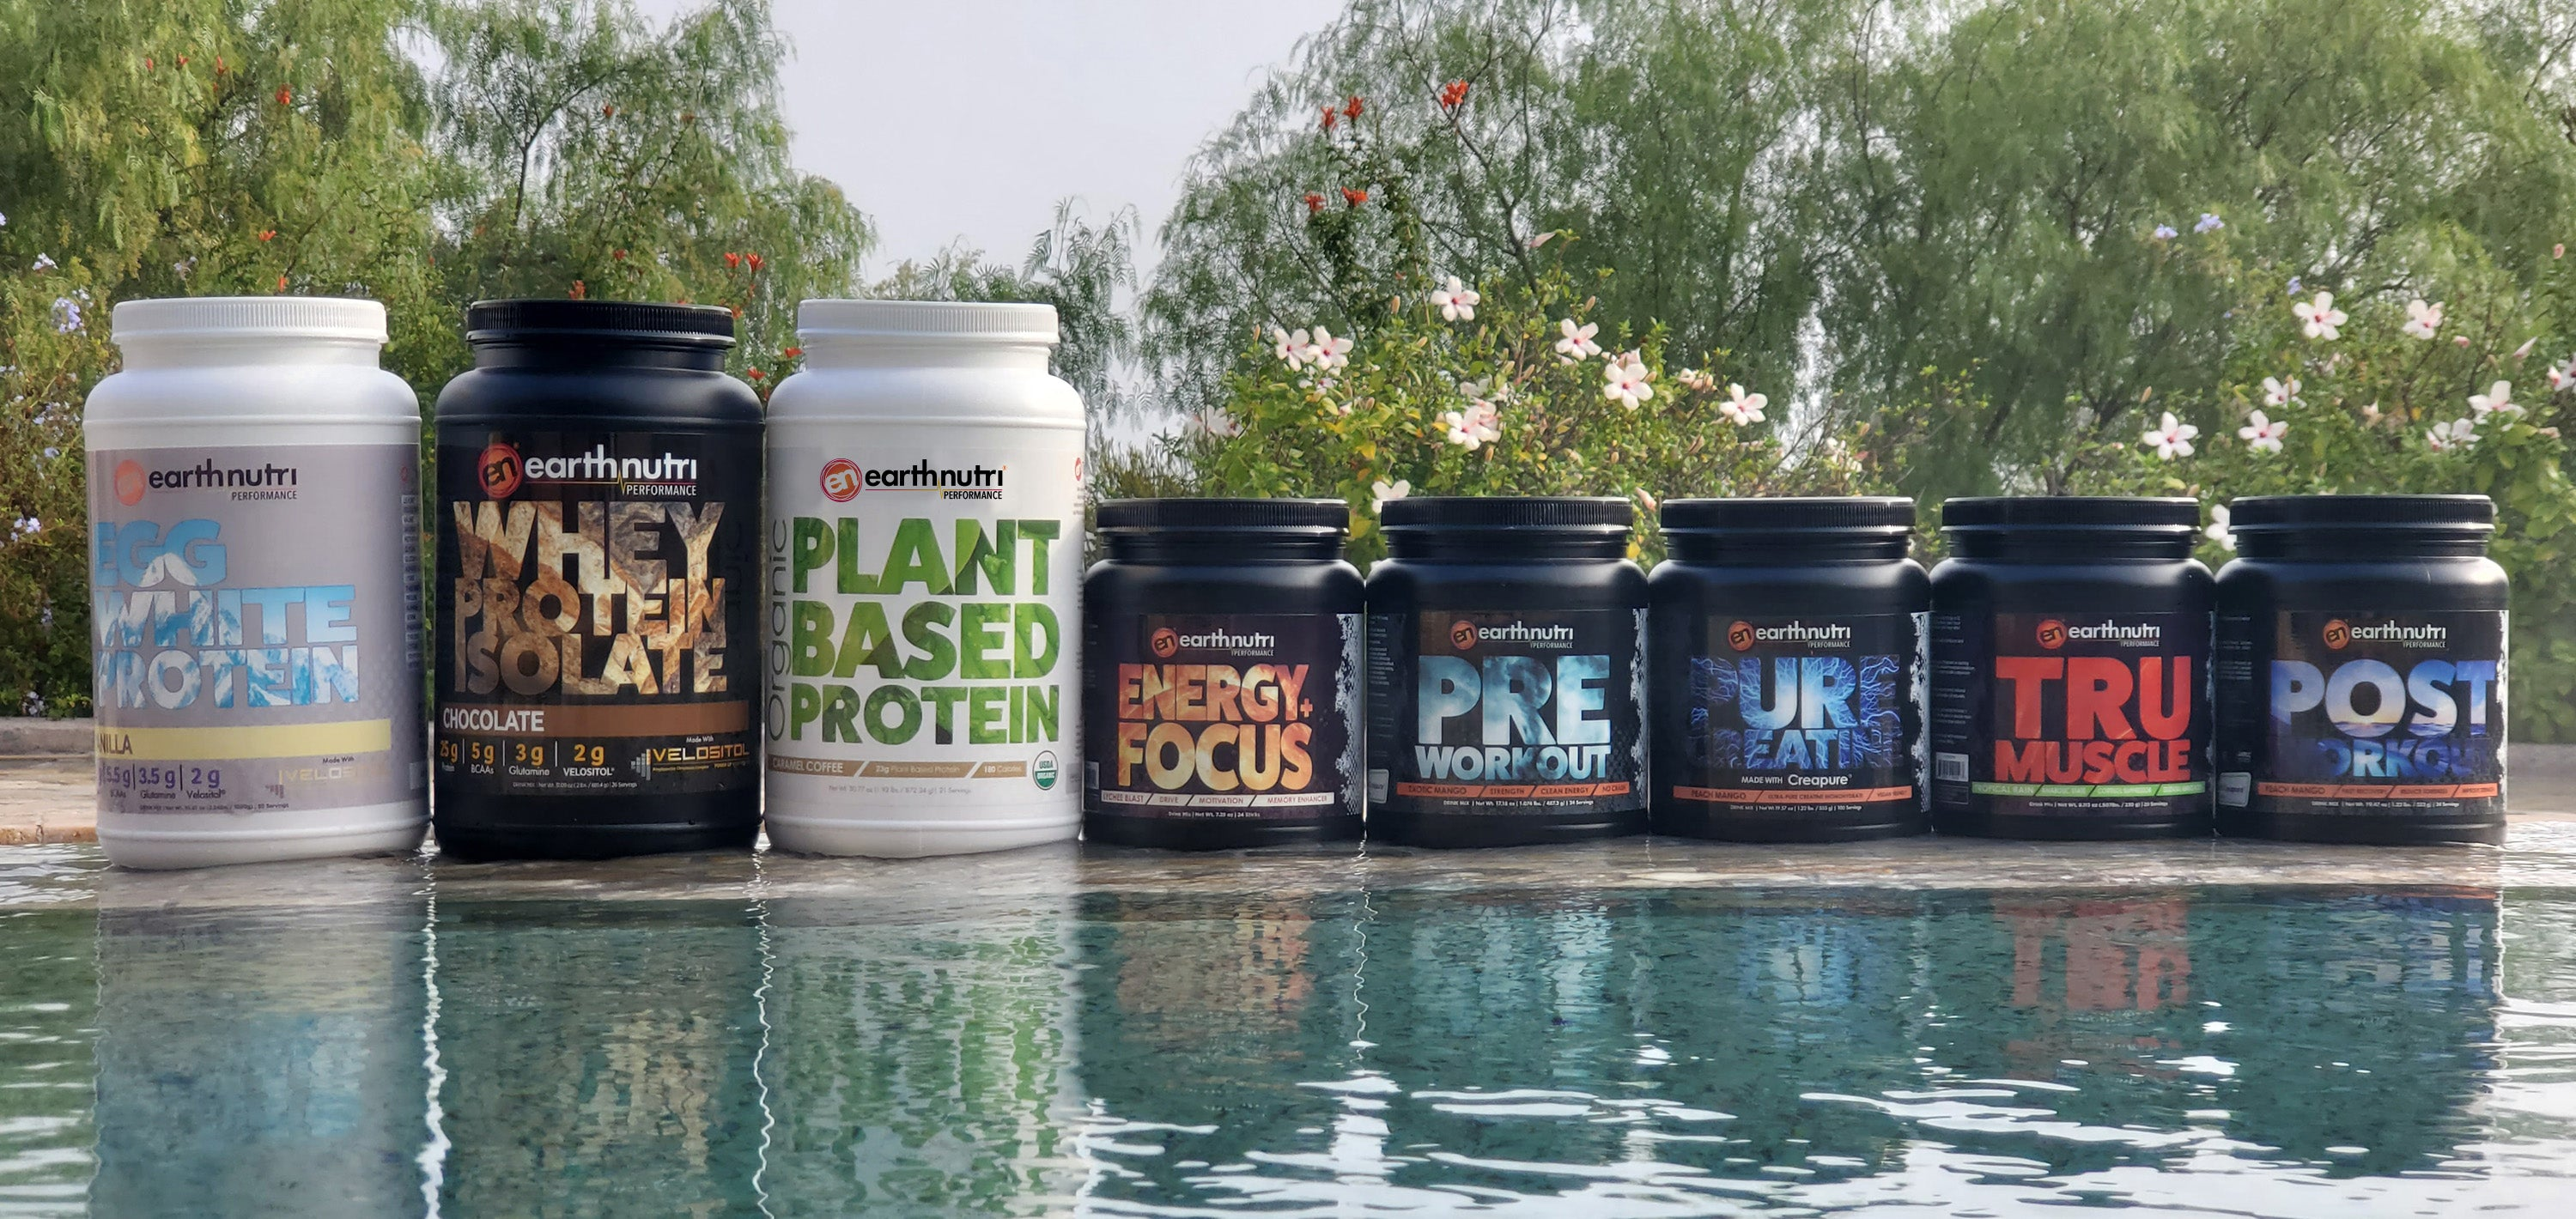 earthnutri - products